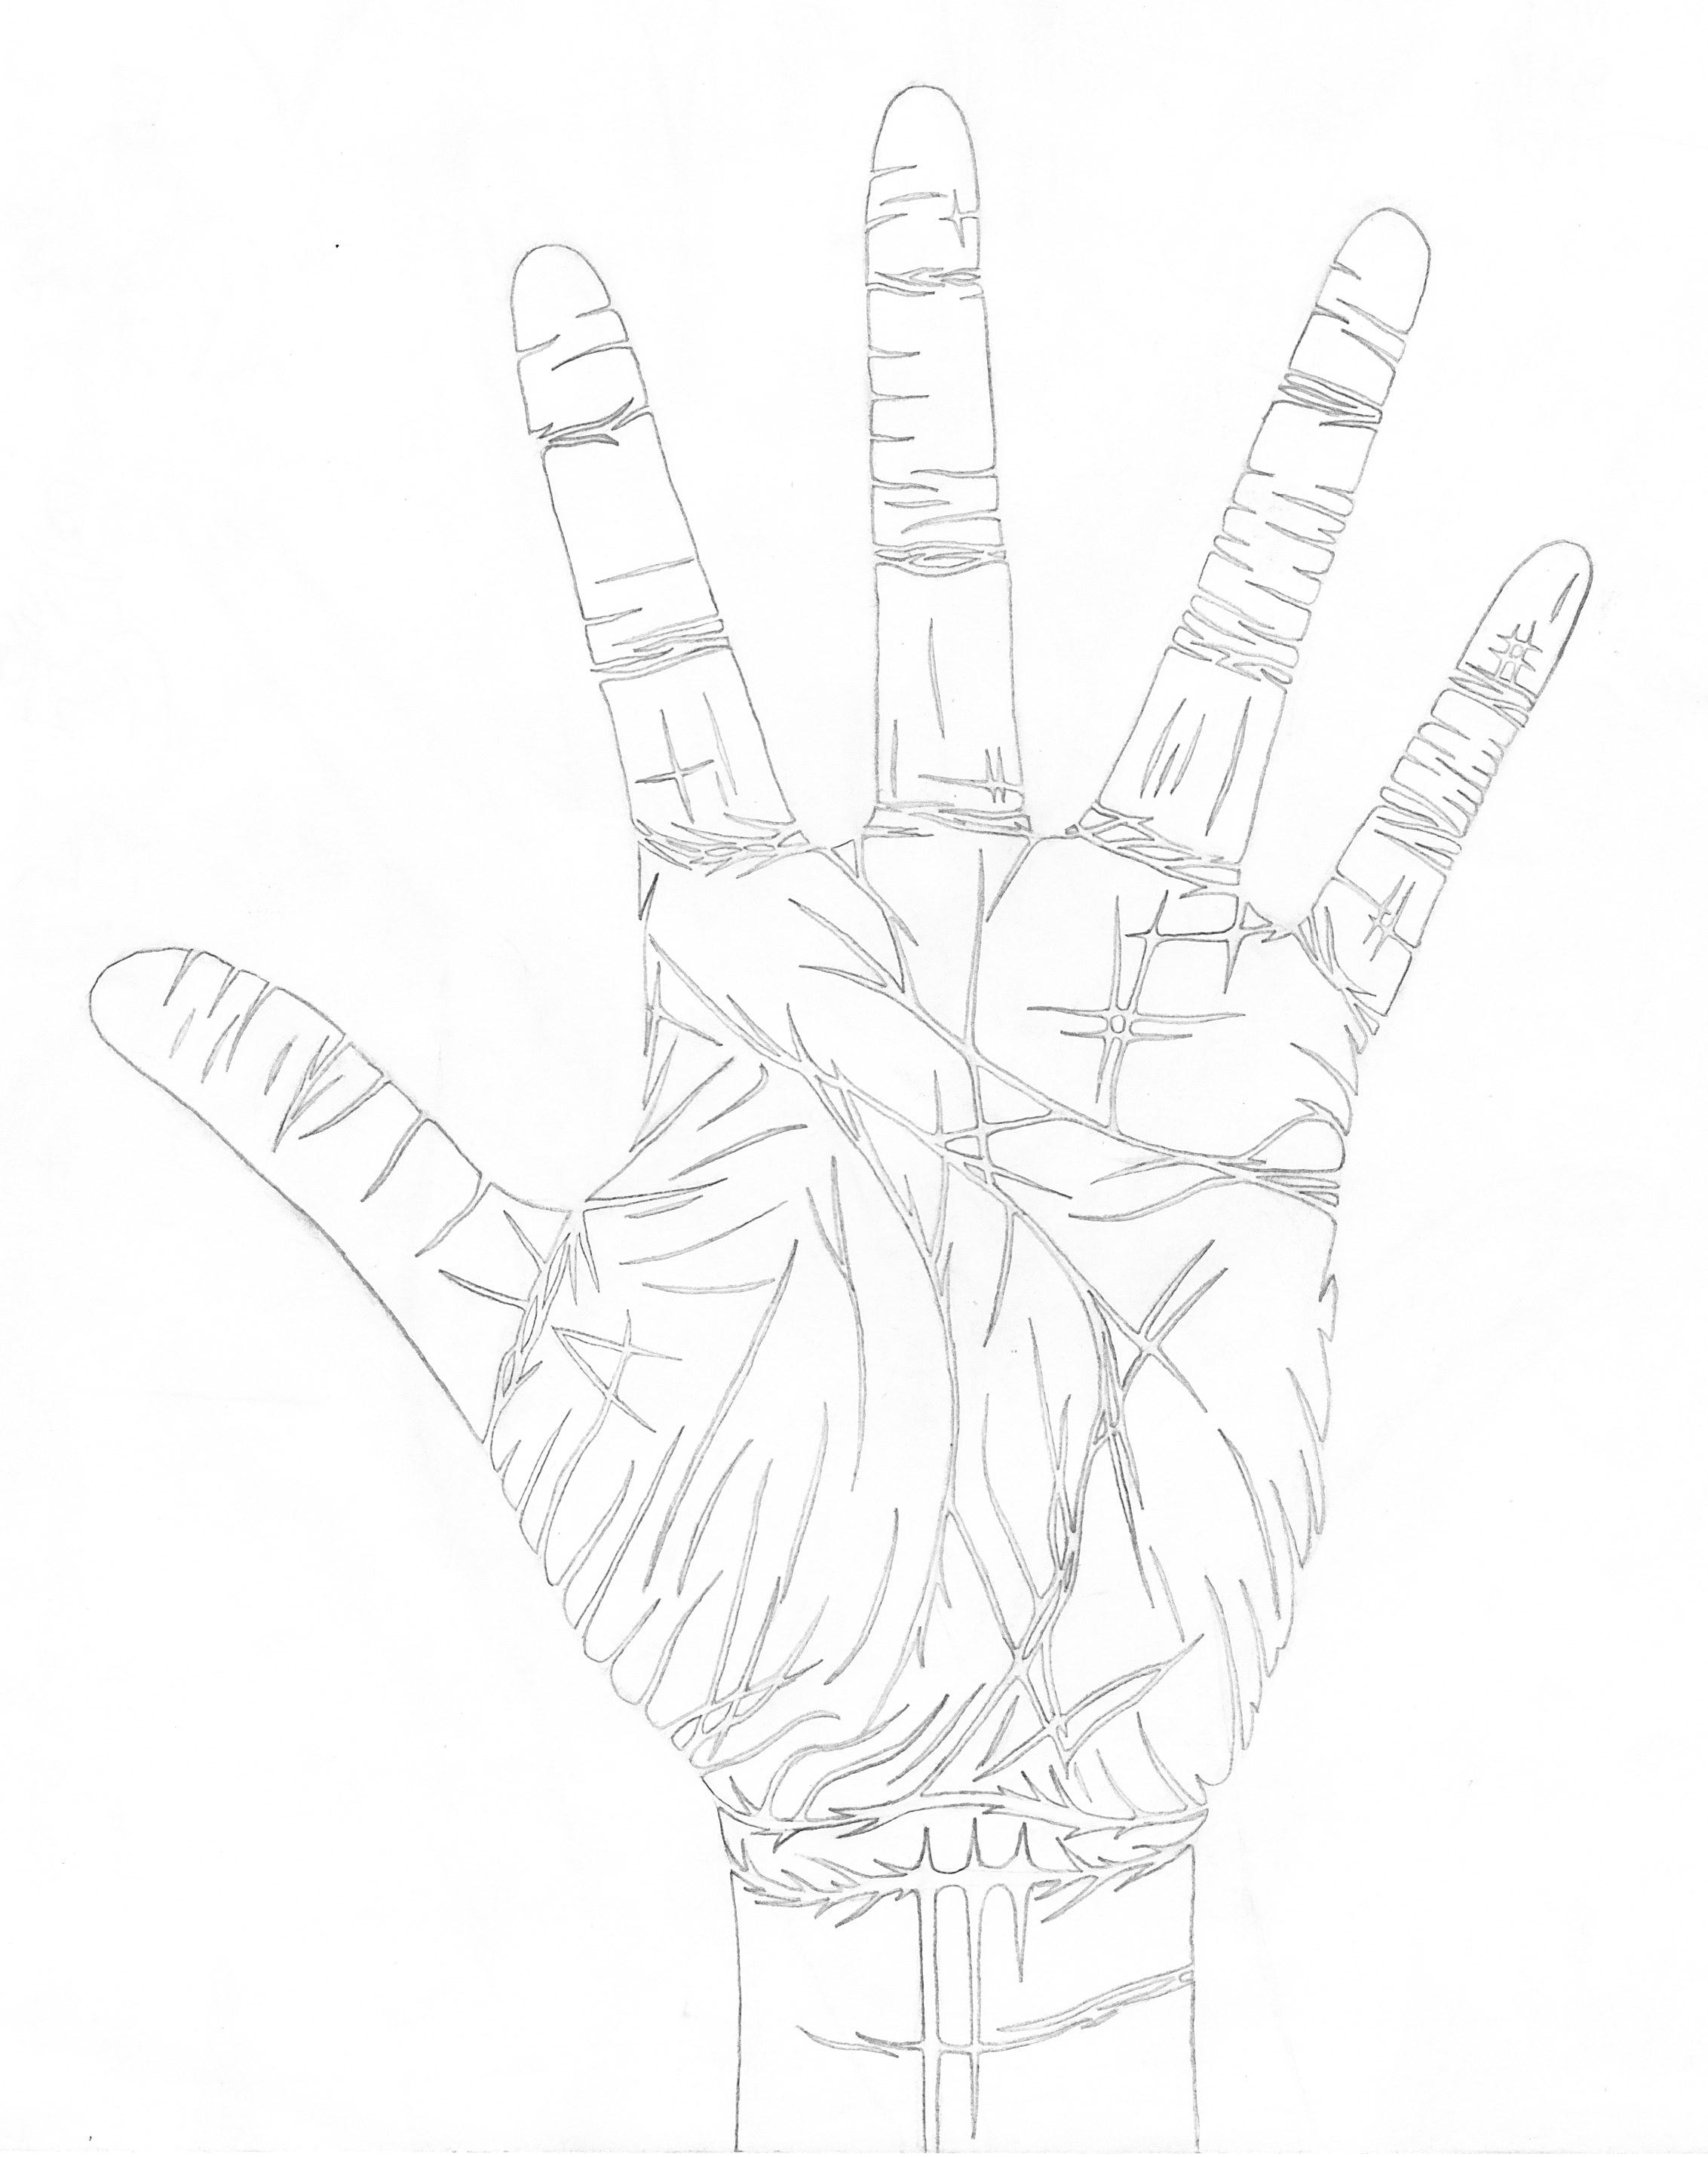 hand outline by chaosxm7